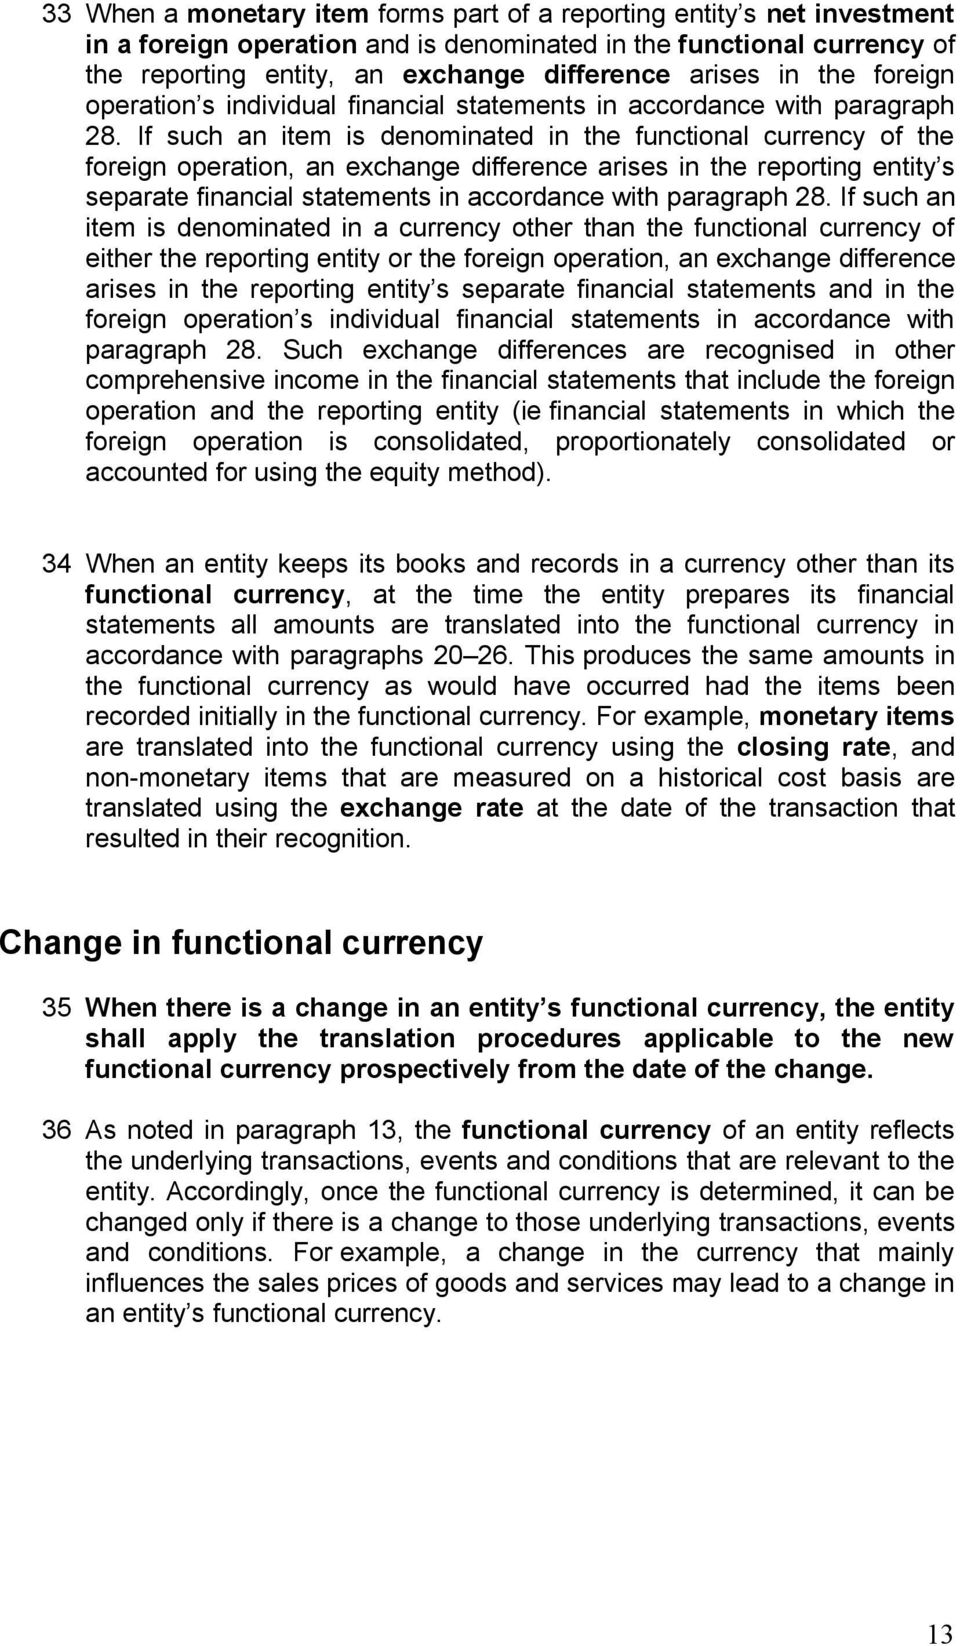 If such an item is denominated in the functional currency of the foreign operation, an exchange difference arises in the reporting entity s separate financial statements in accordance with paragraph